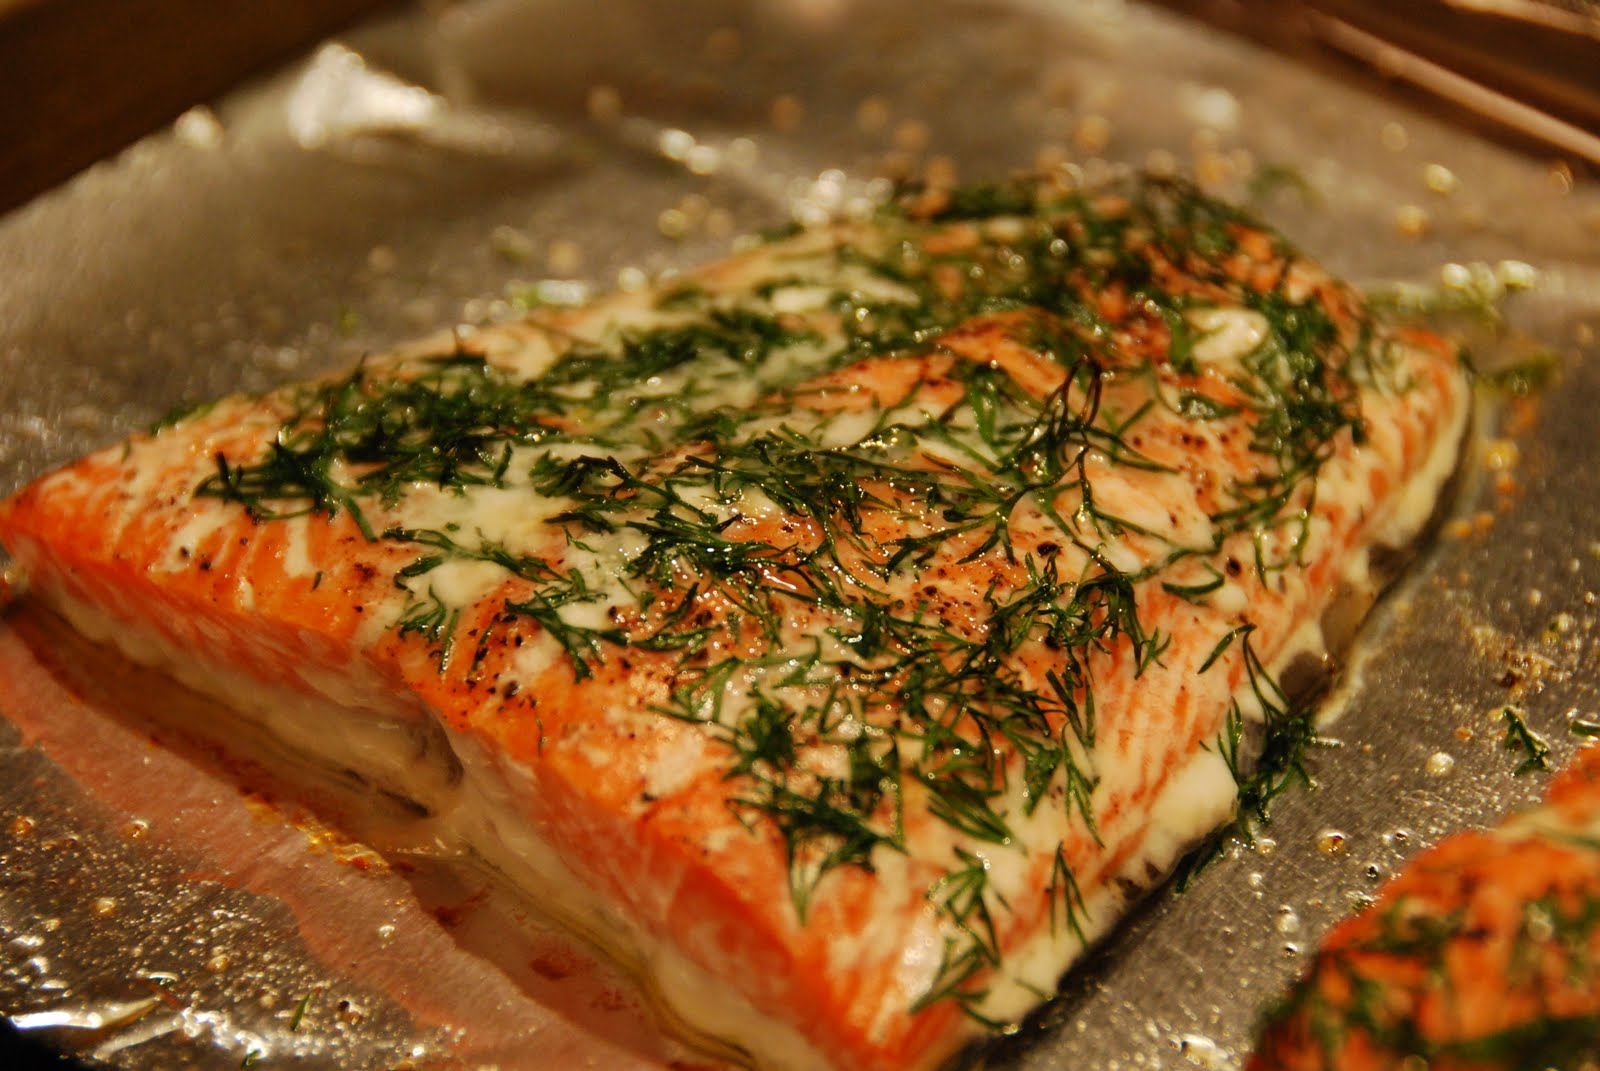 How To Bake Salmon Fillet In Toaster Oven By Robert Adams Salmon And Dill  20140916easypansearedcrispyfishfoodlab